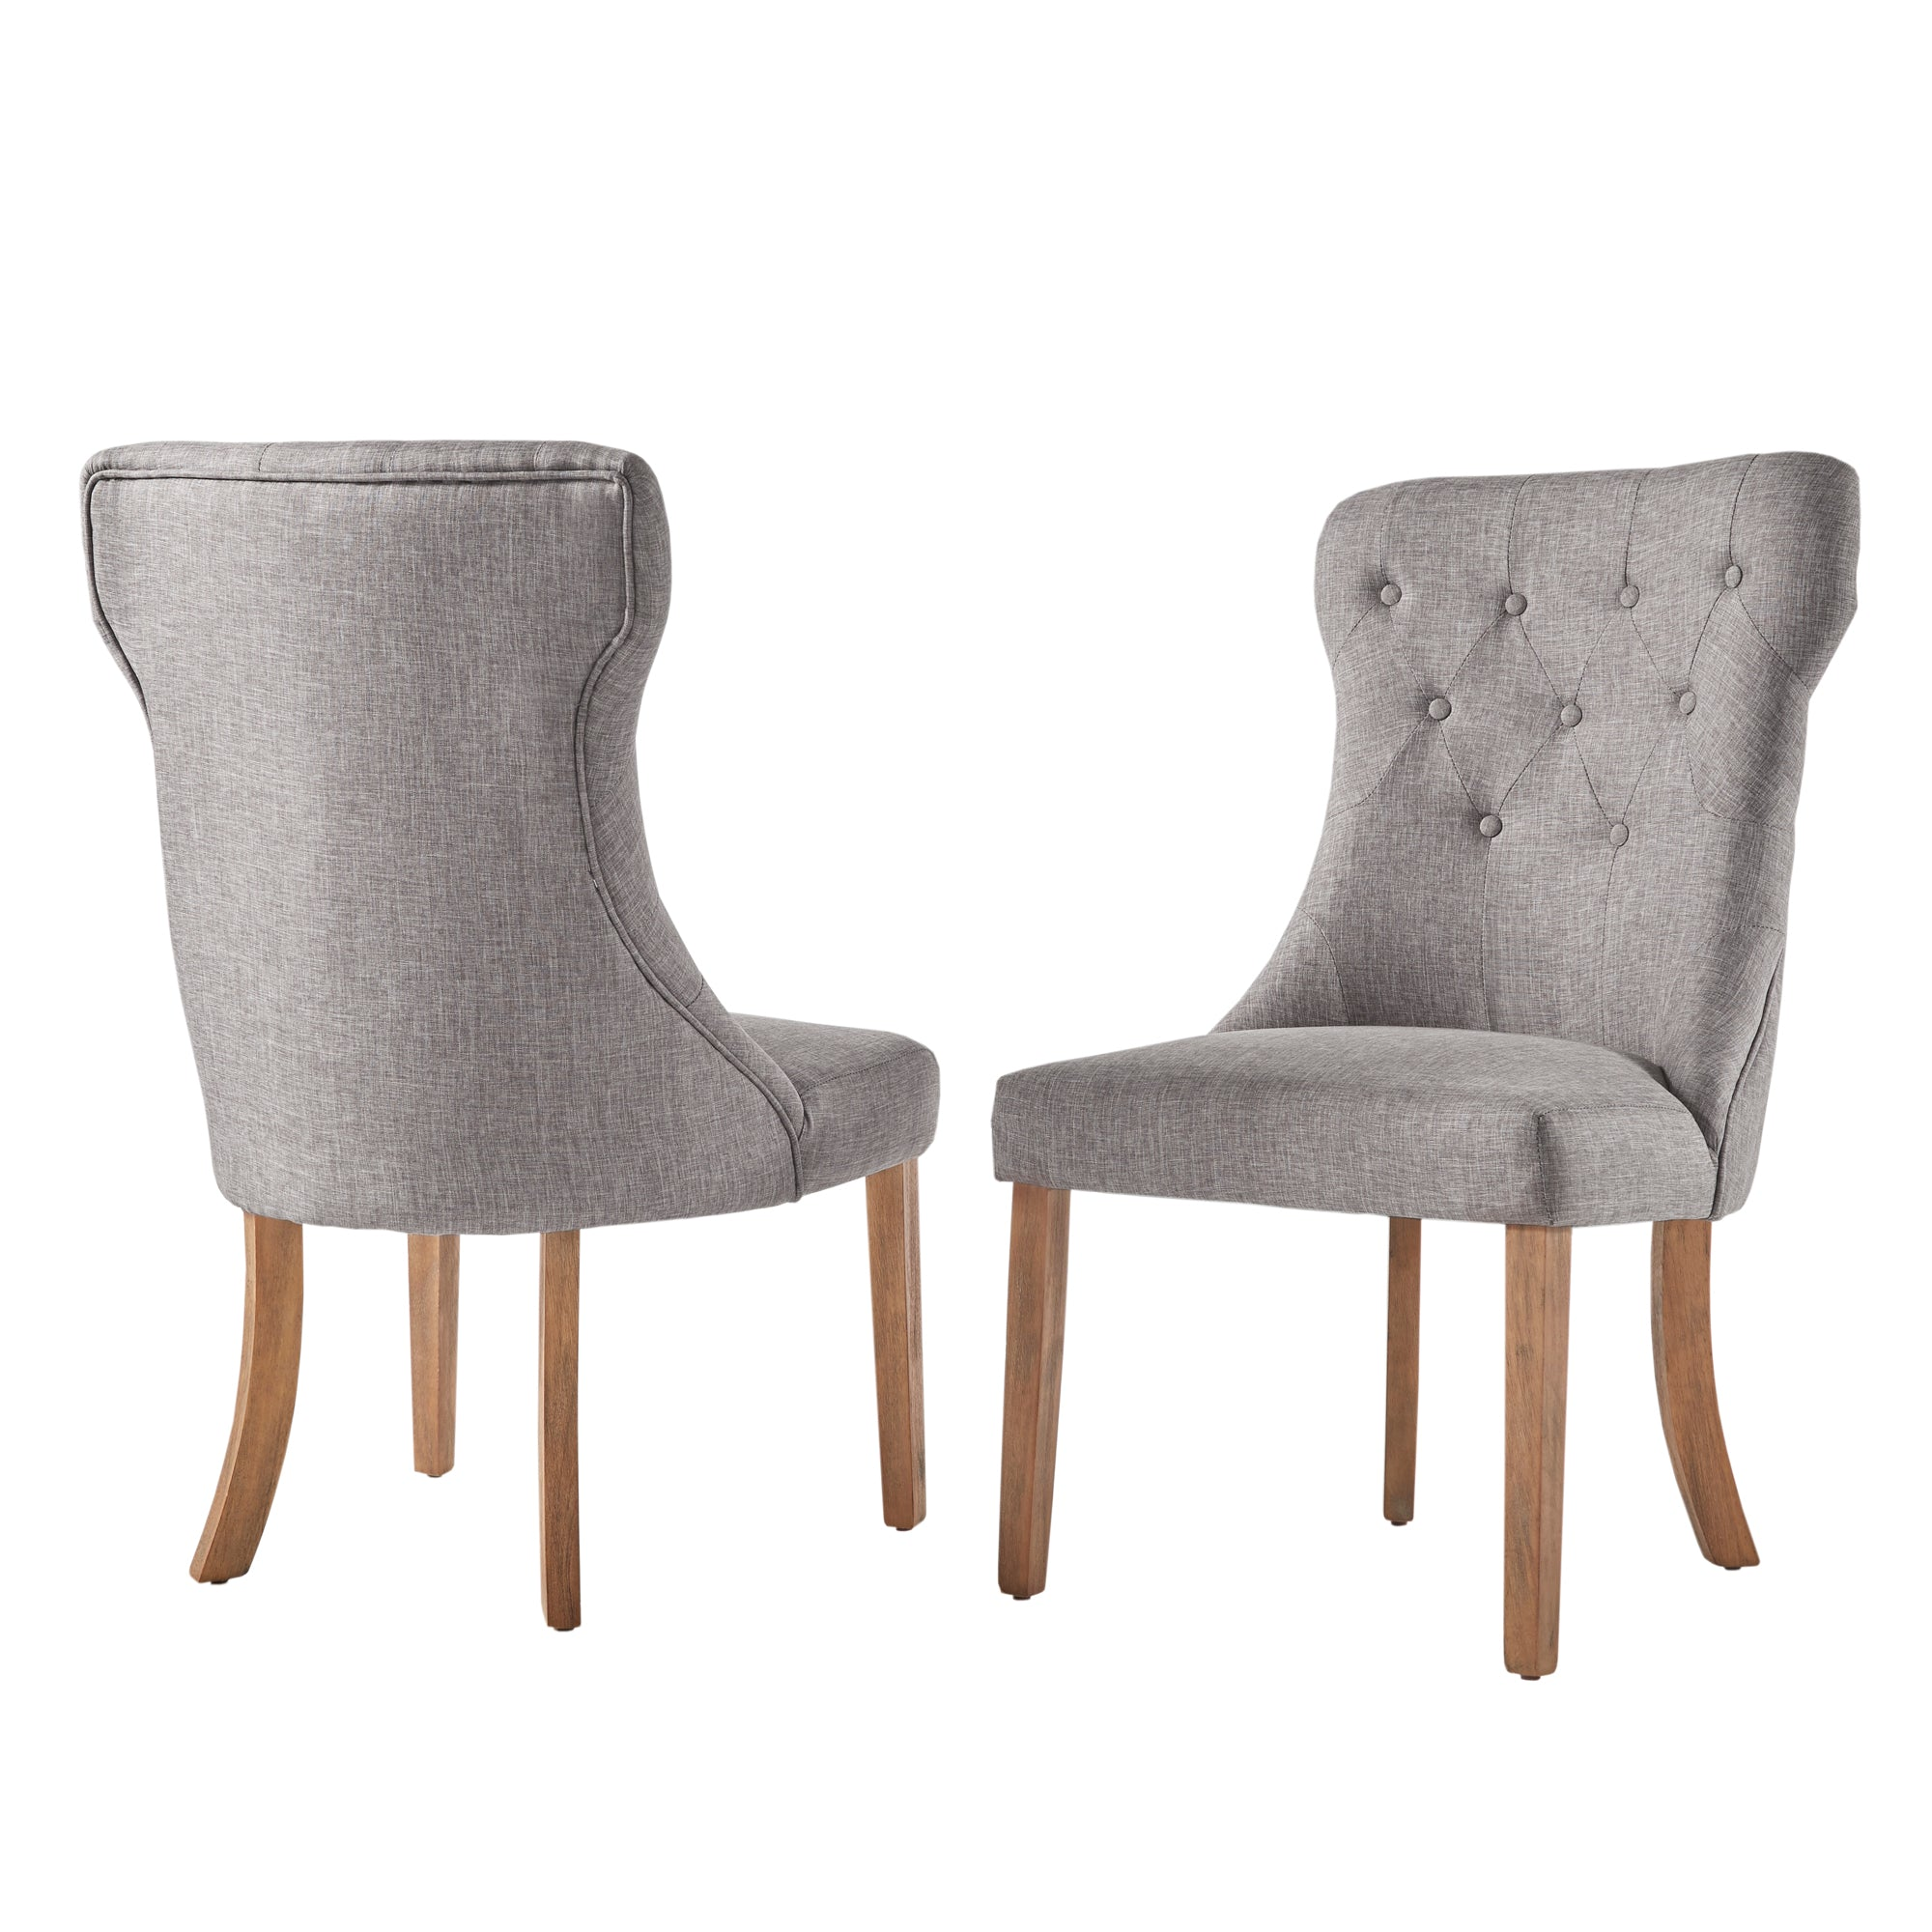 Button Tufted Dining Chair (Set of 2) - Grey Color Finish